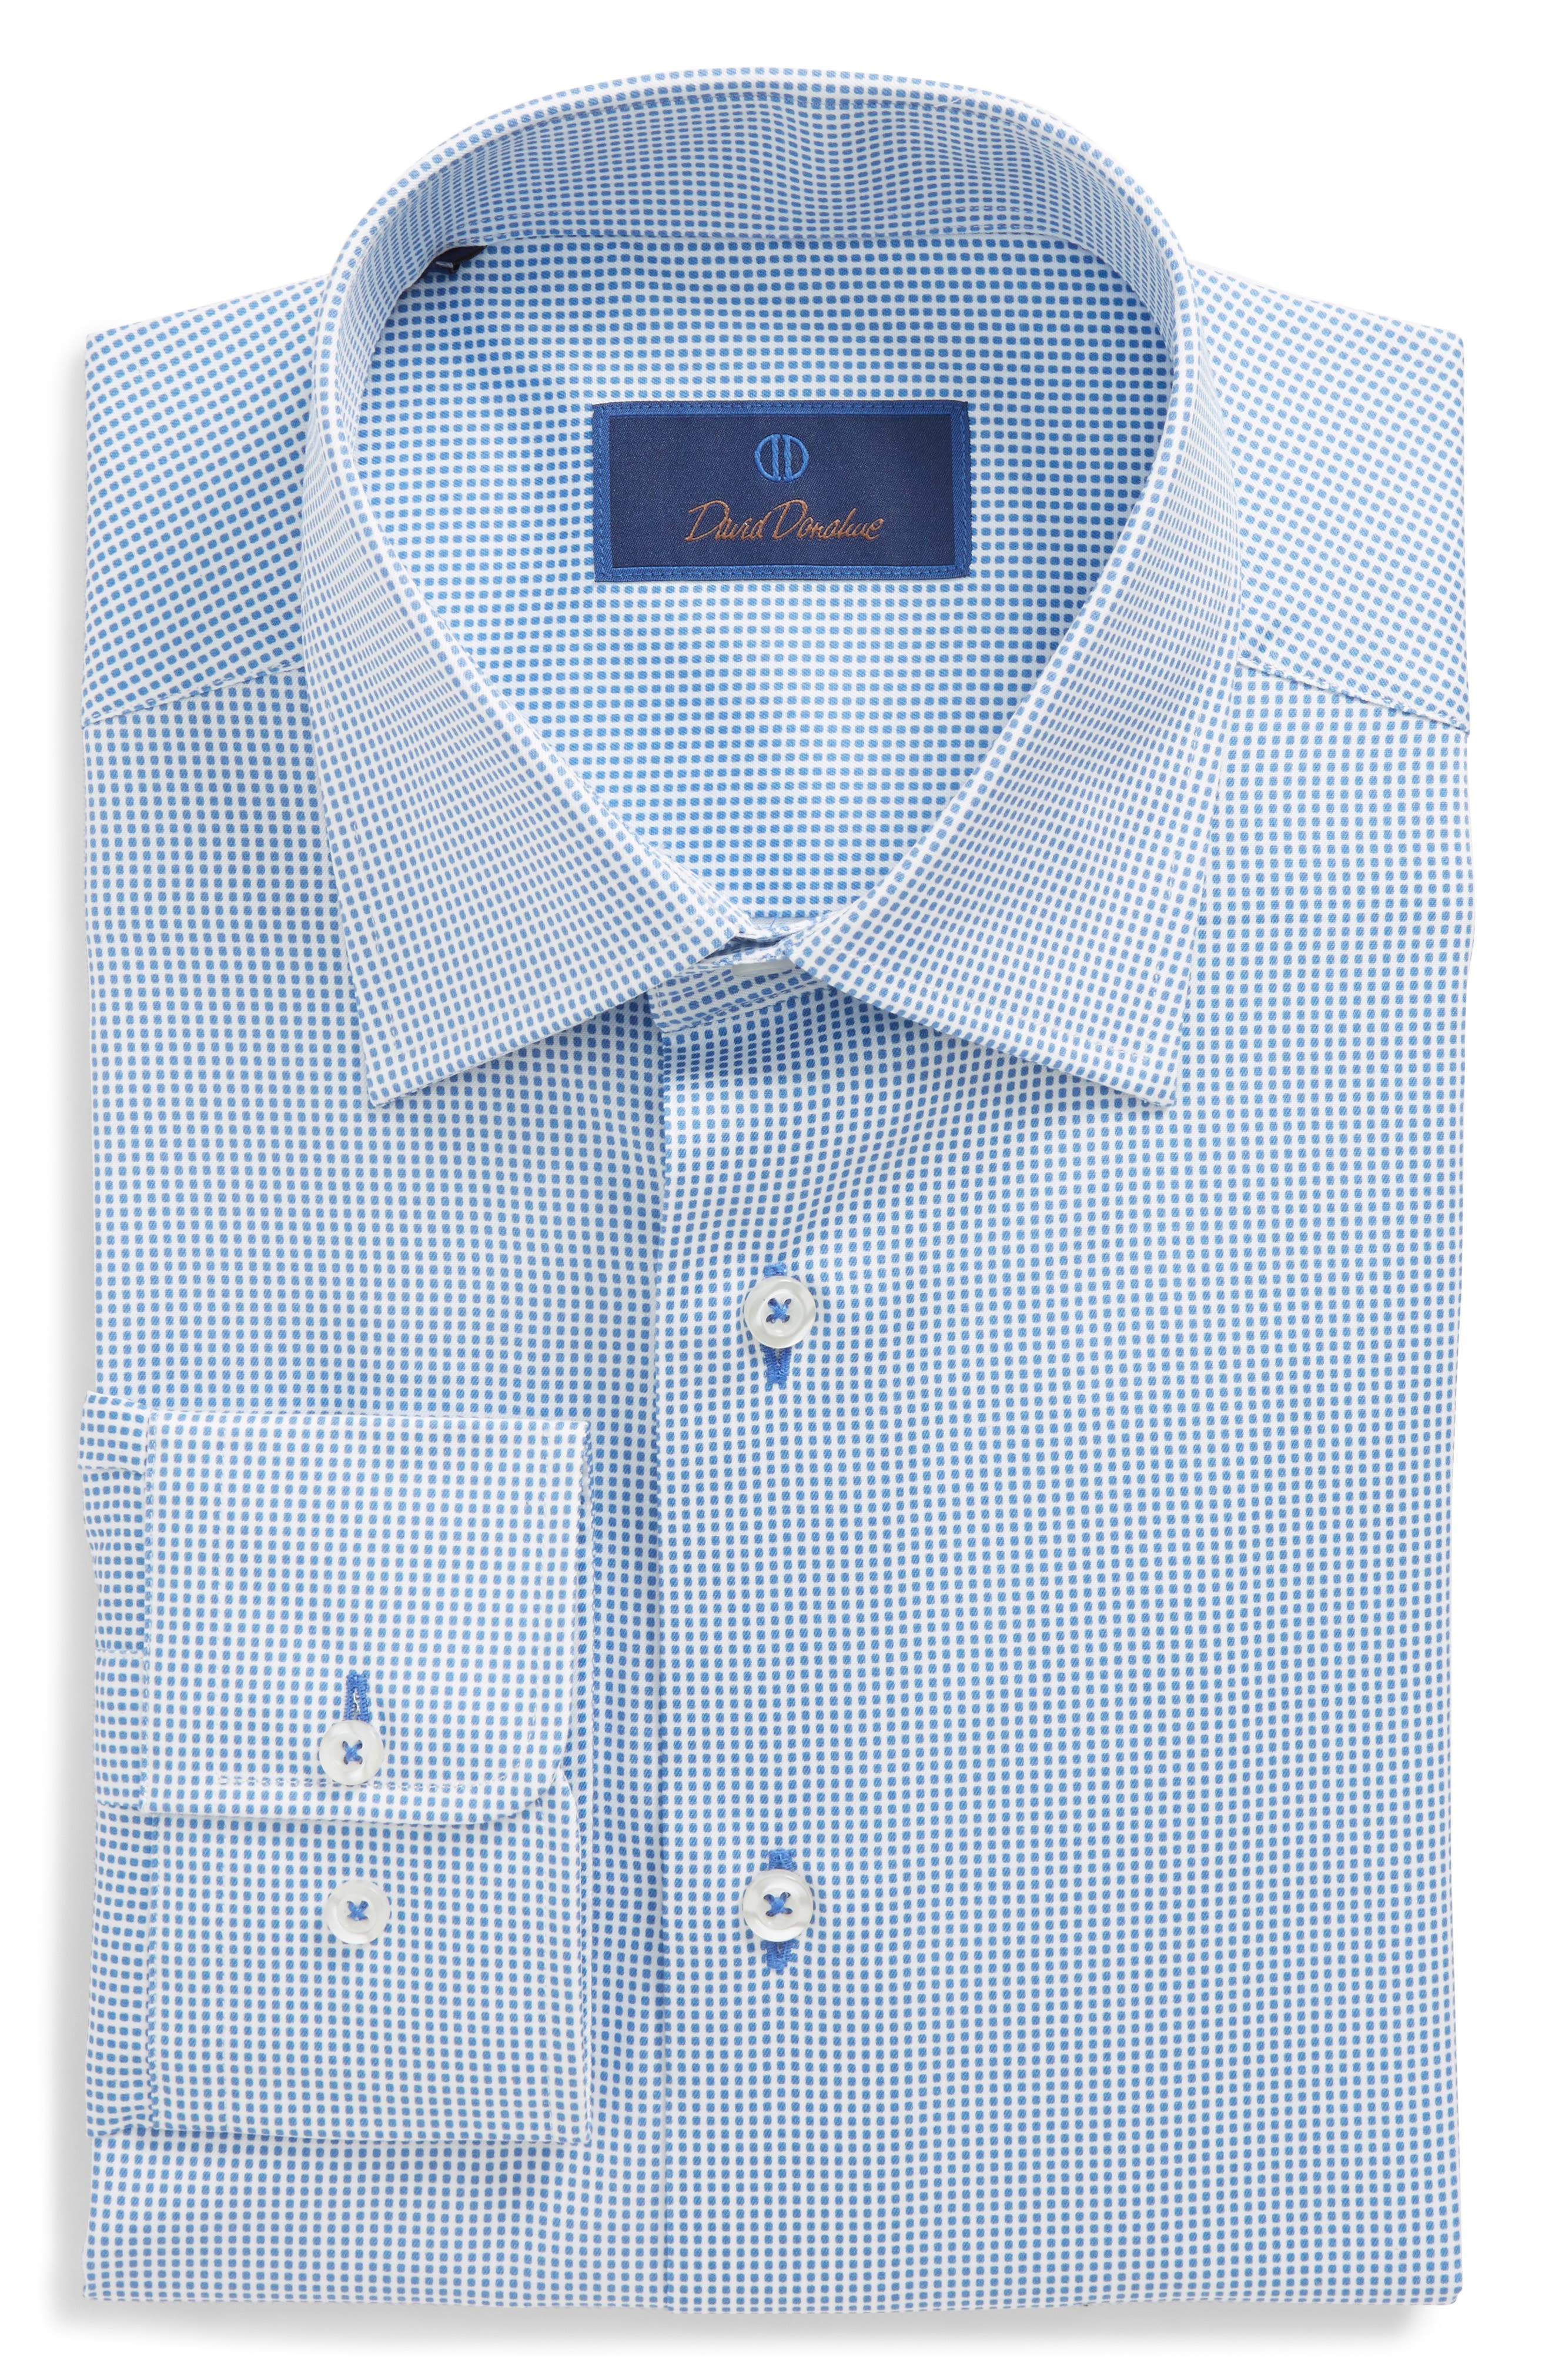 Regular Fit Dot Dress Shirt,                         Main,                         color,